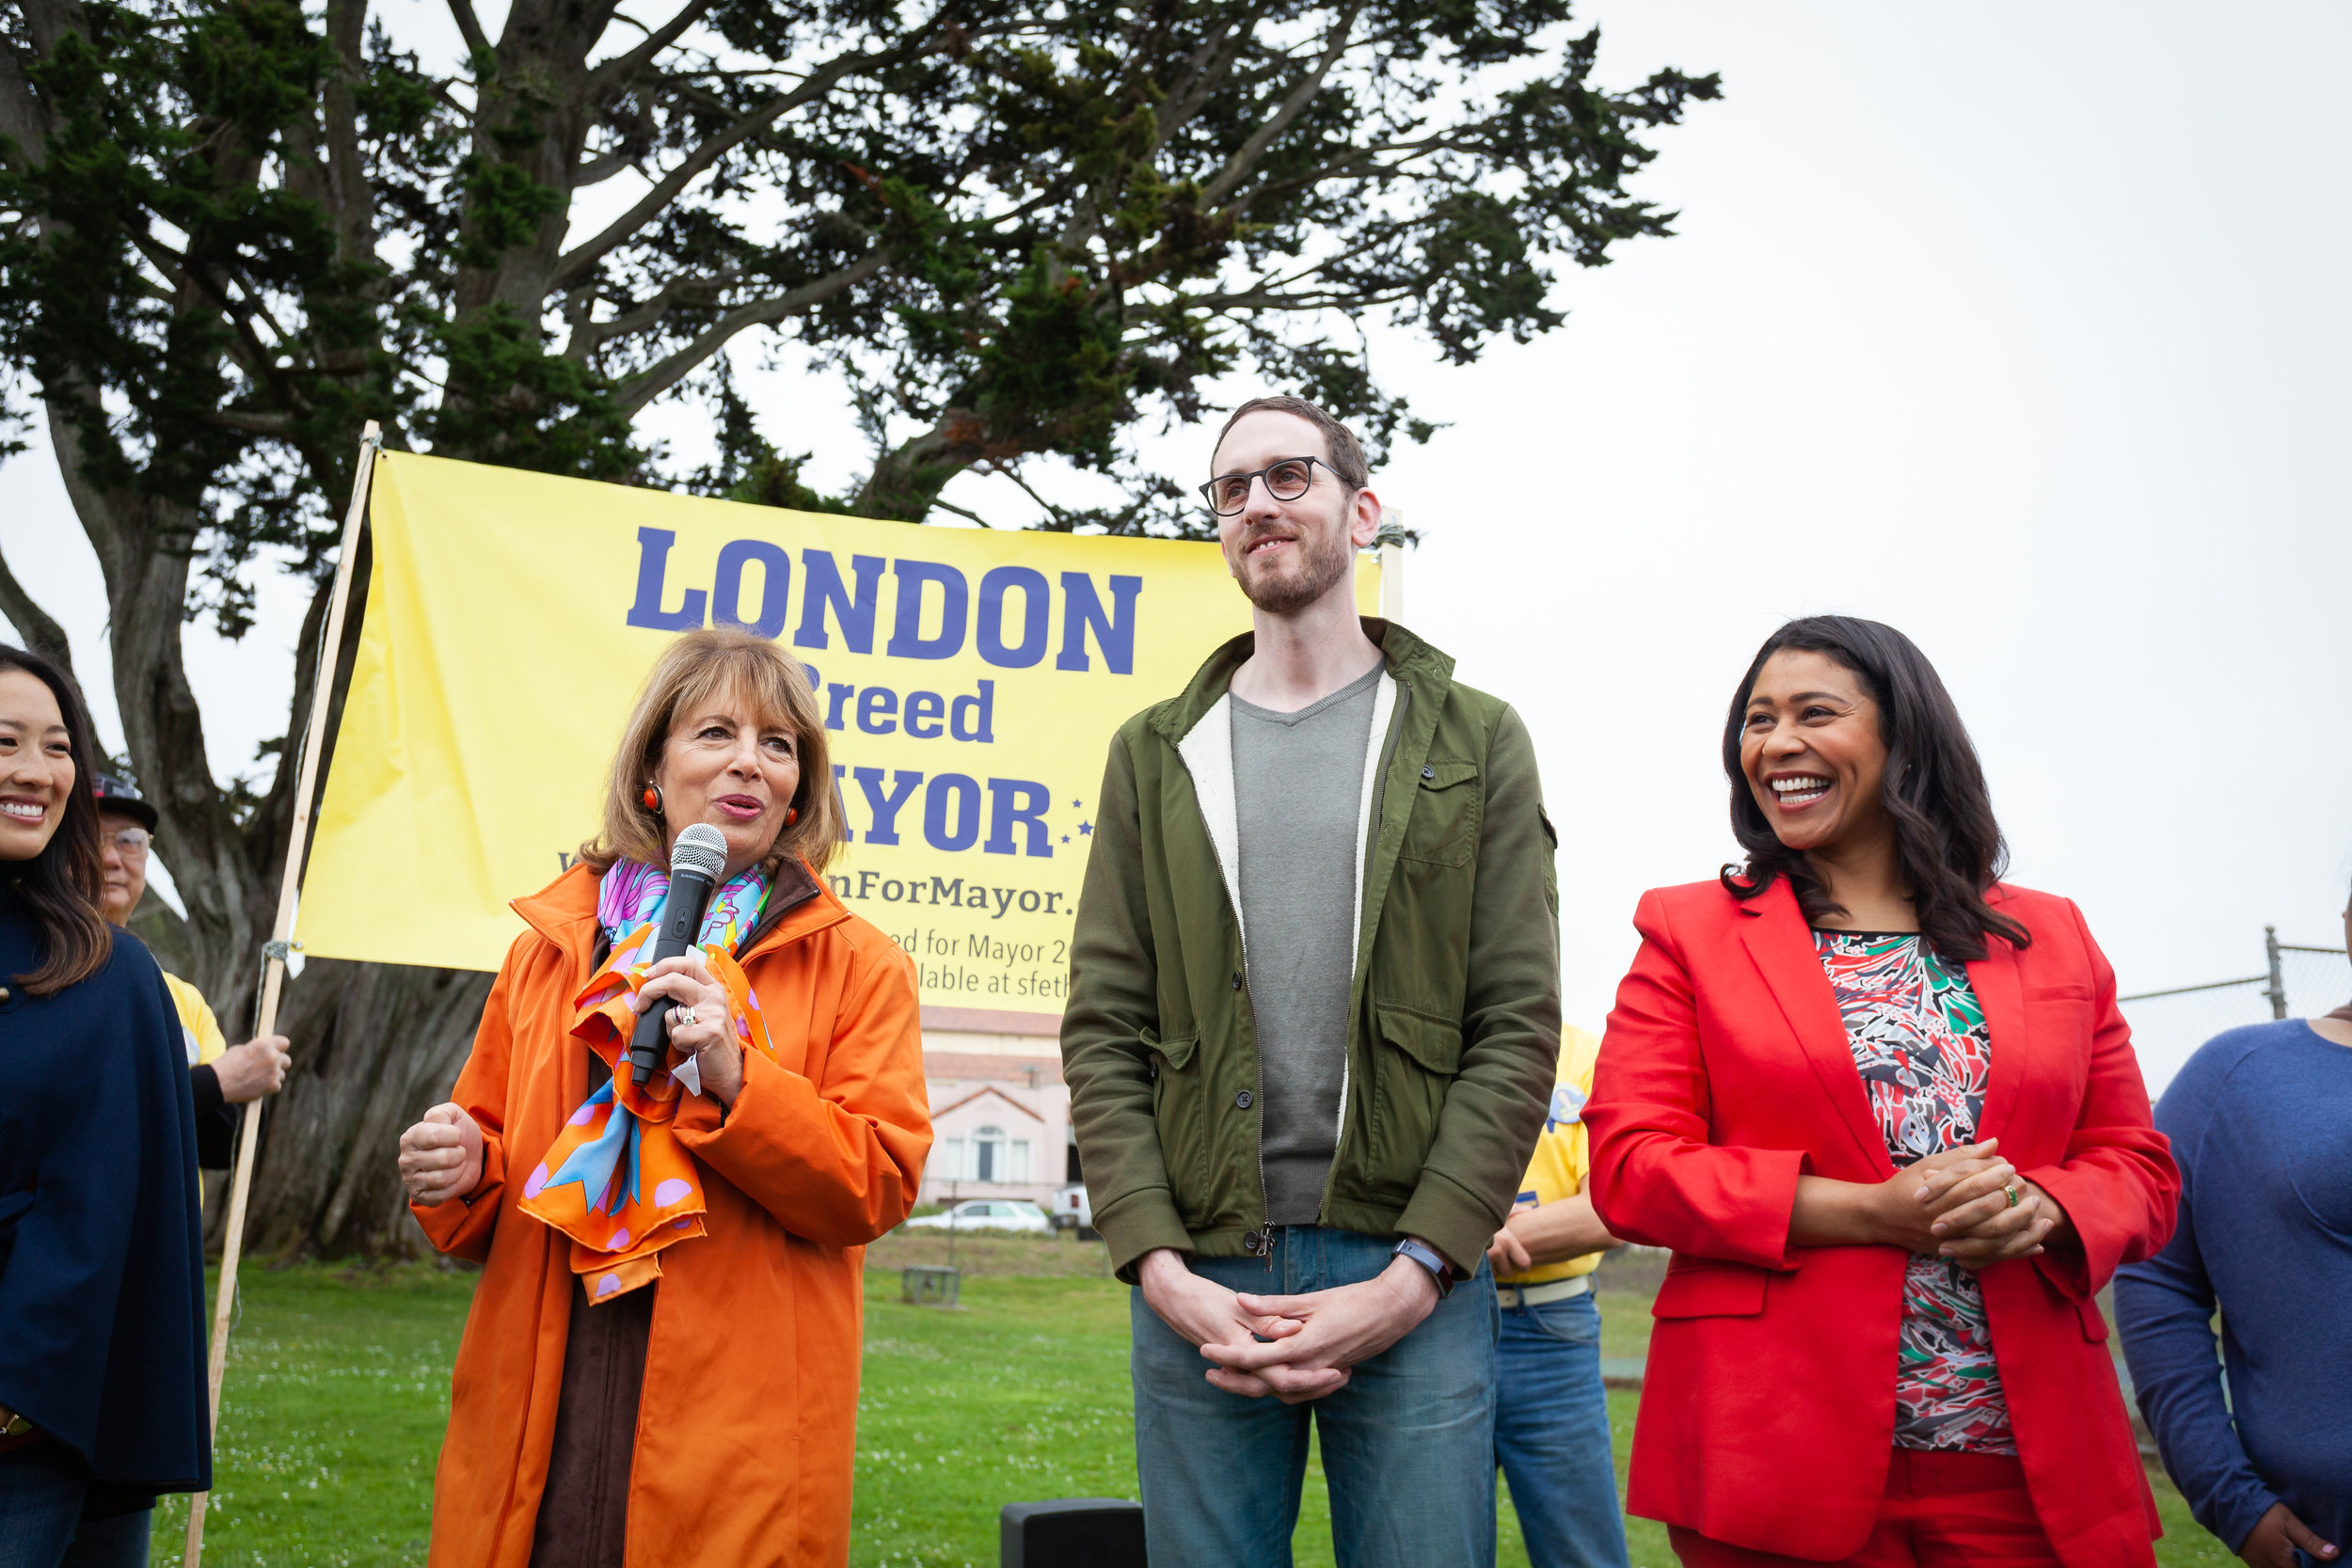 Mayor-London-Breed-San-Francisco-Senator-Jackie-Speier.jpg